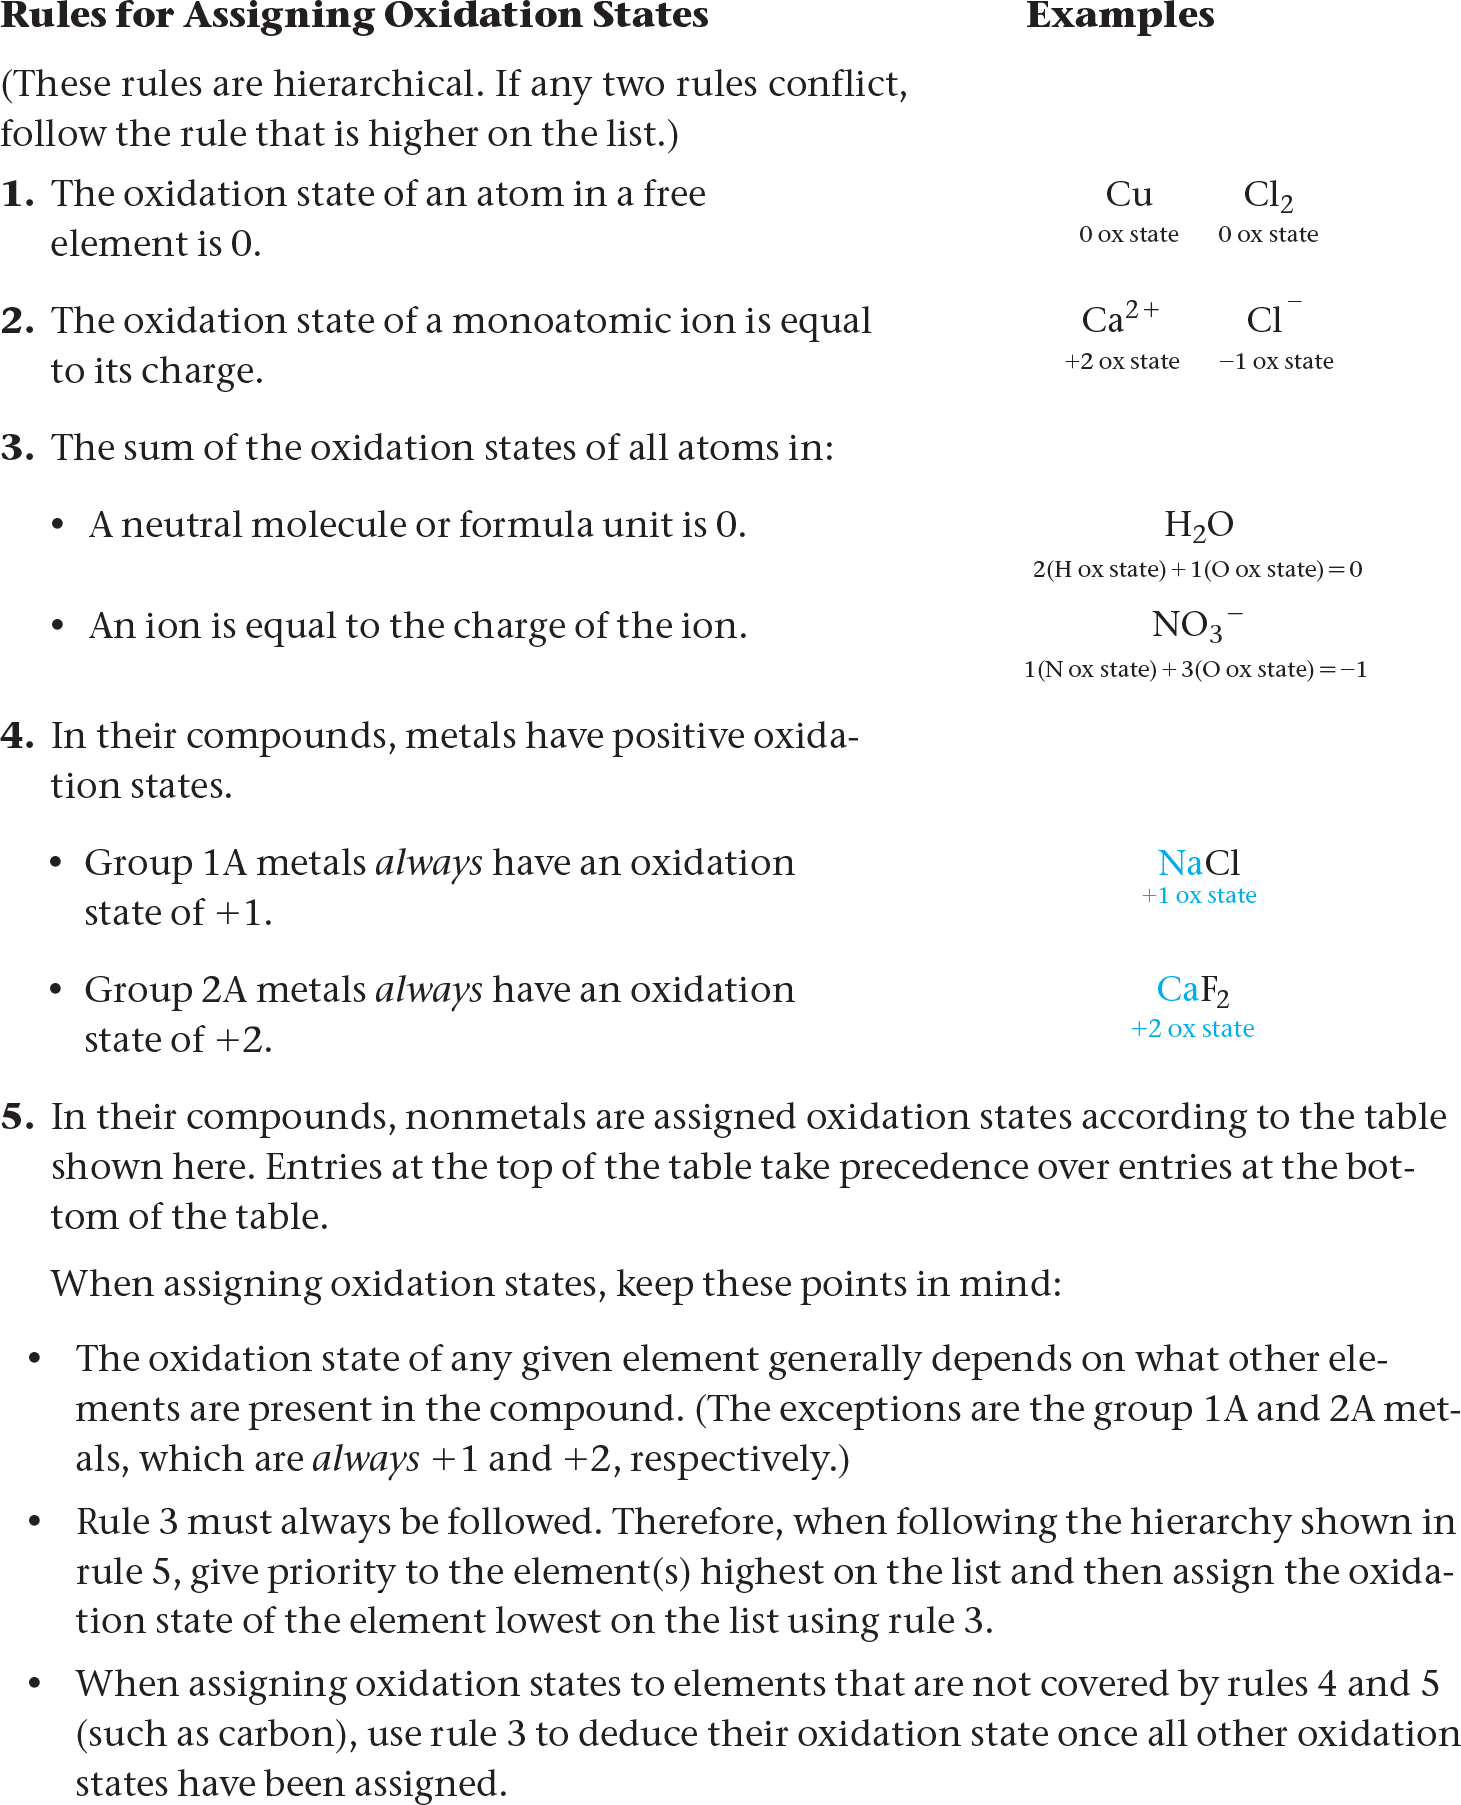 Oxidation And Reduction Worksheet Answer Key